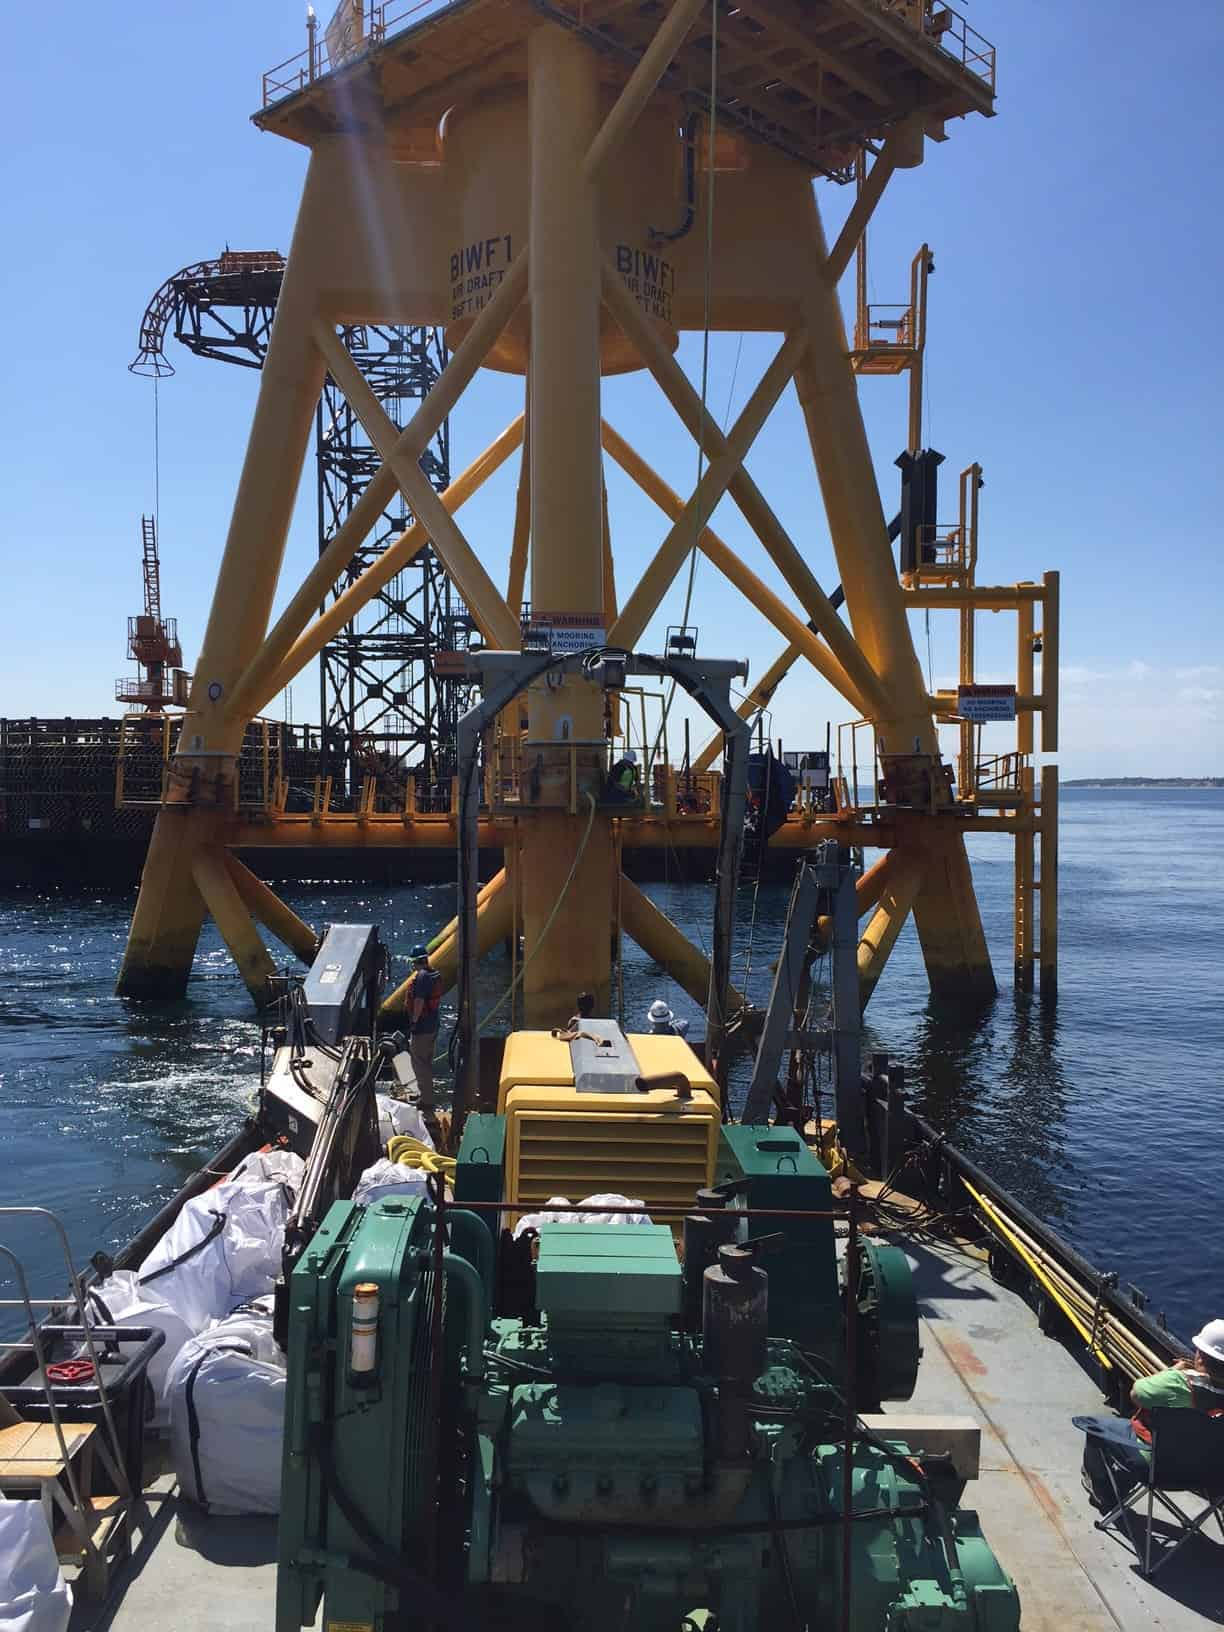 Providing Air to Cable Wind Farm Construction & Support with Miller Marine Services